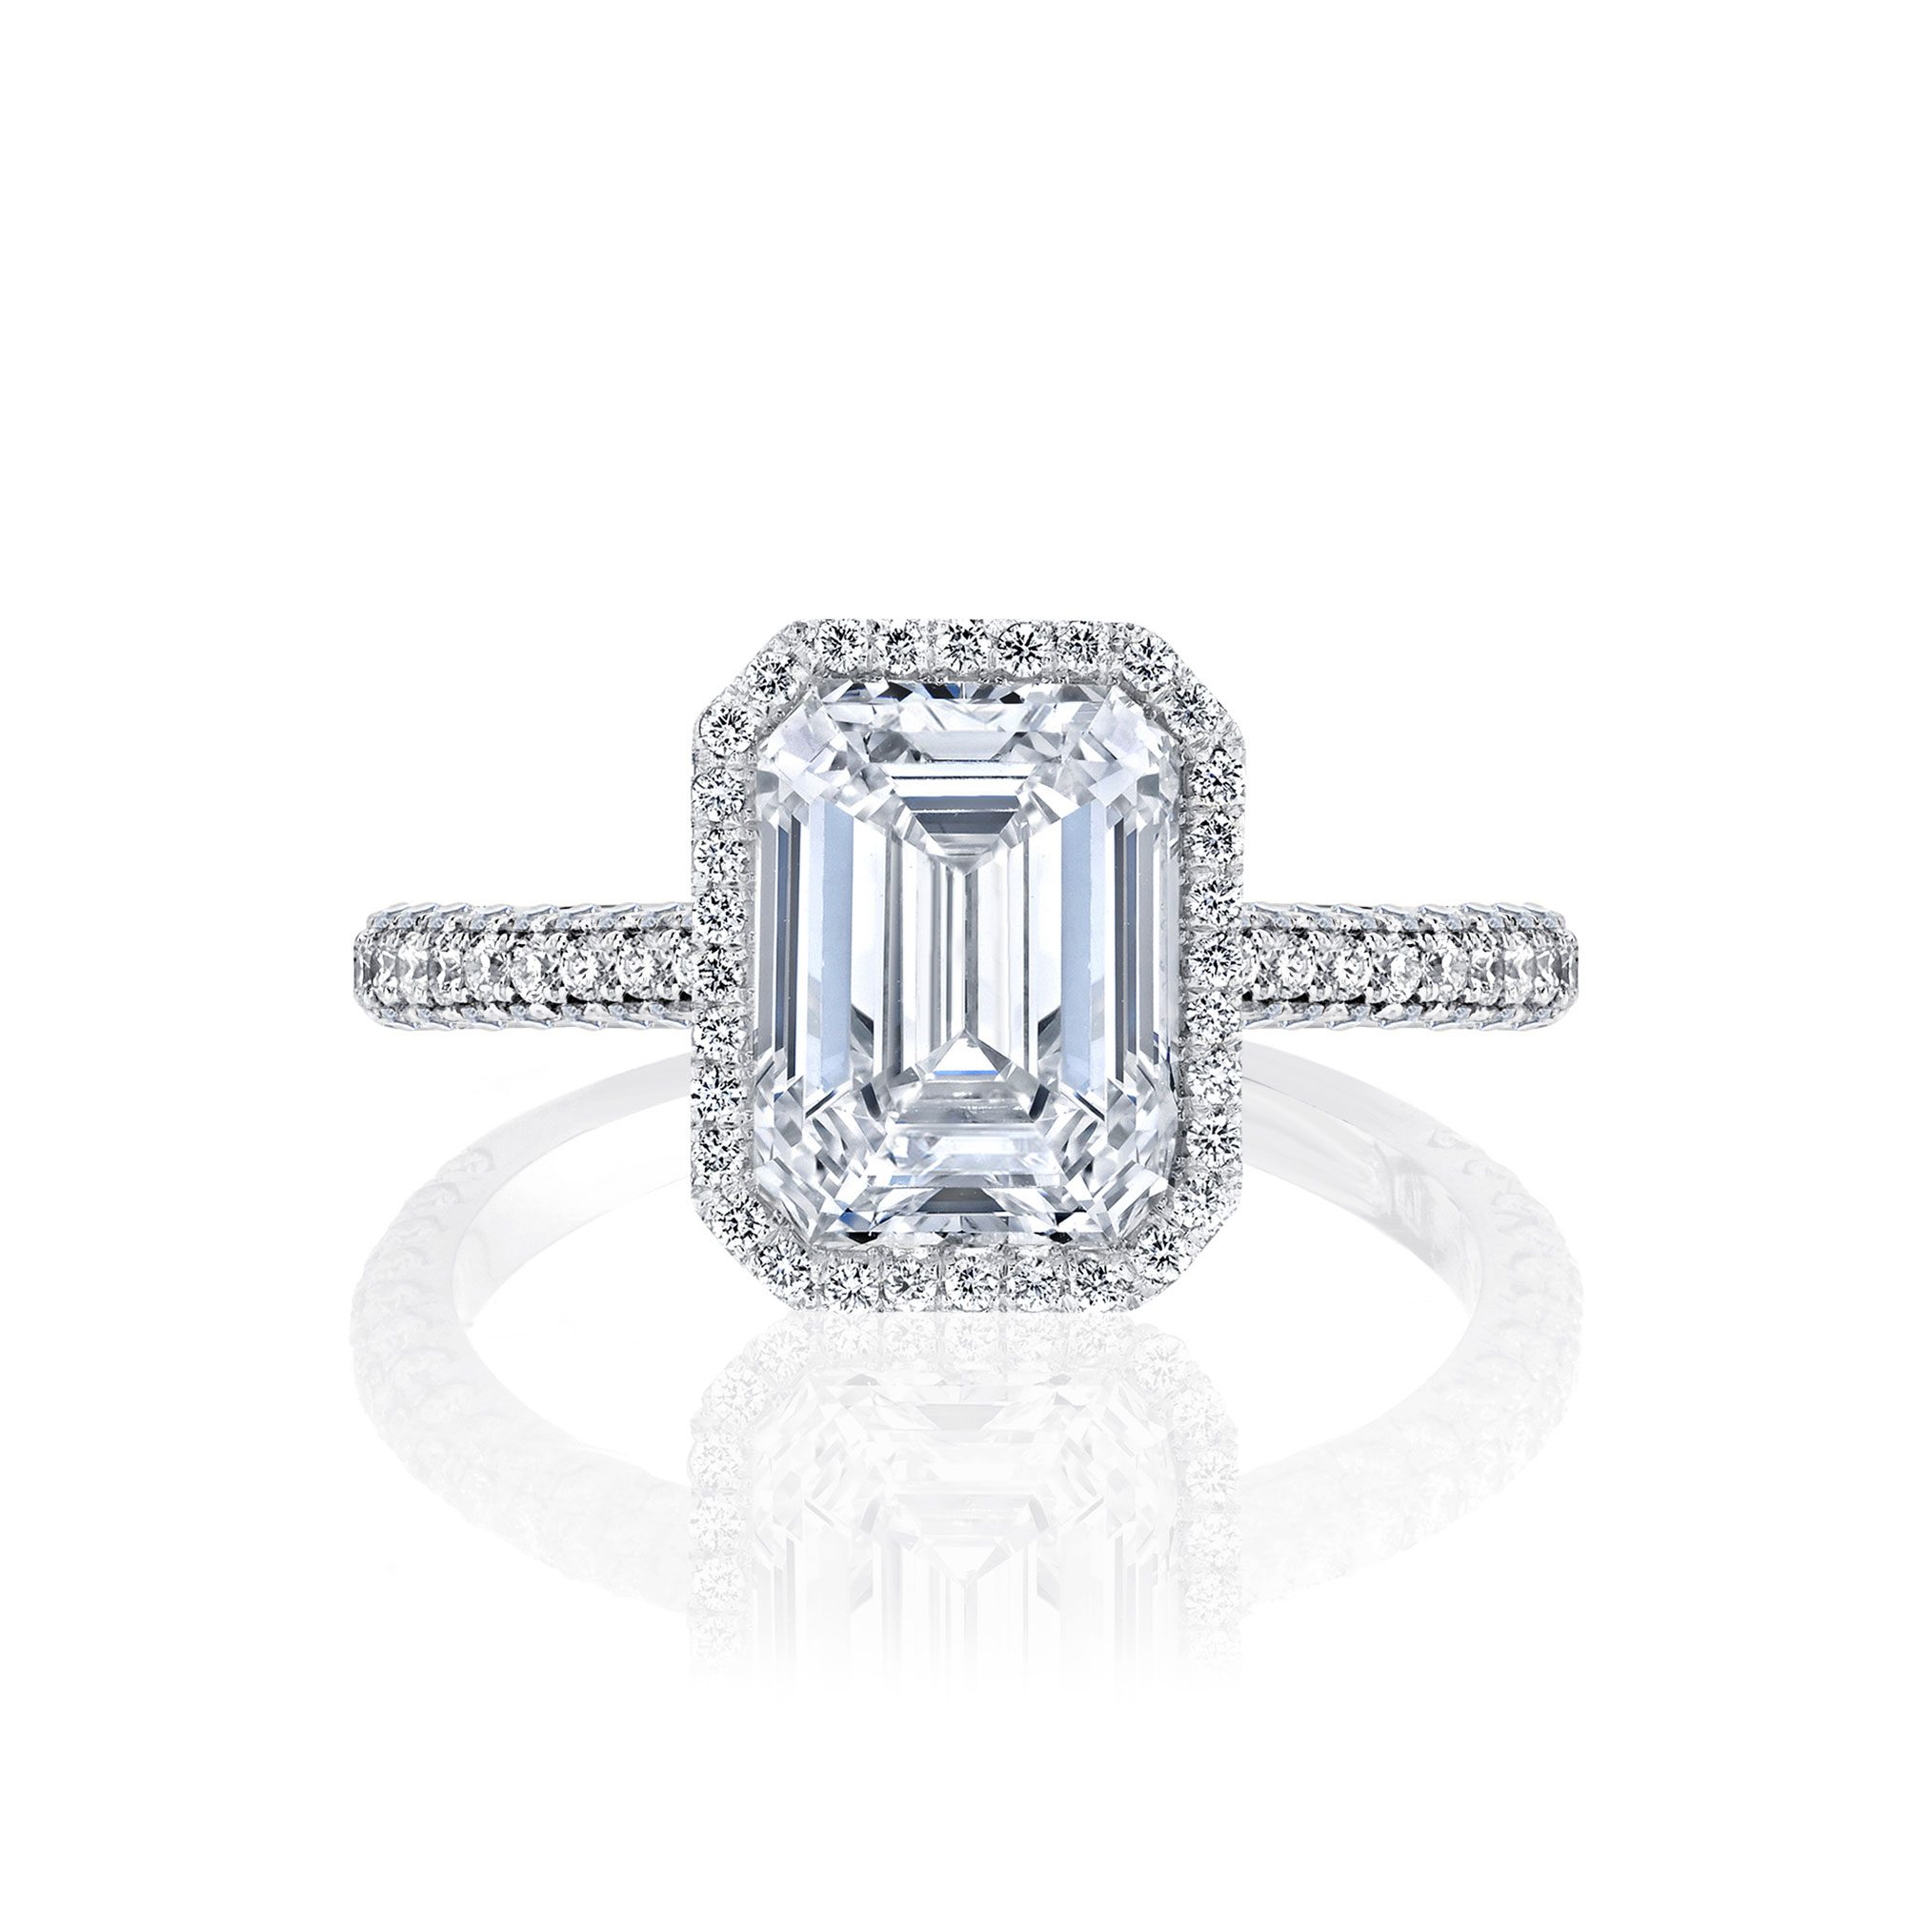 Jacqueline Seamless Halo® Engagement Ring with Lab Grown Emerald Cut Diamond in 18k white gold